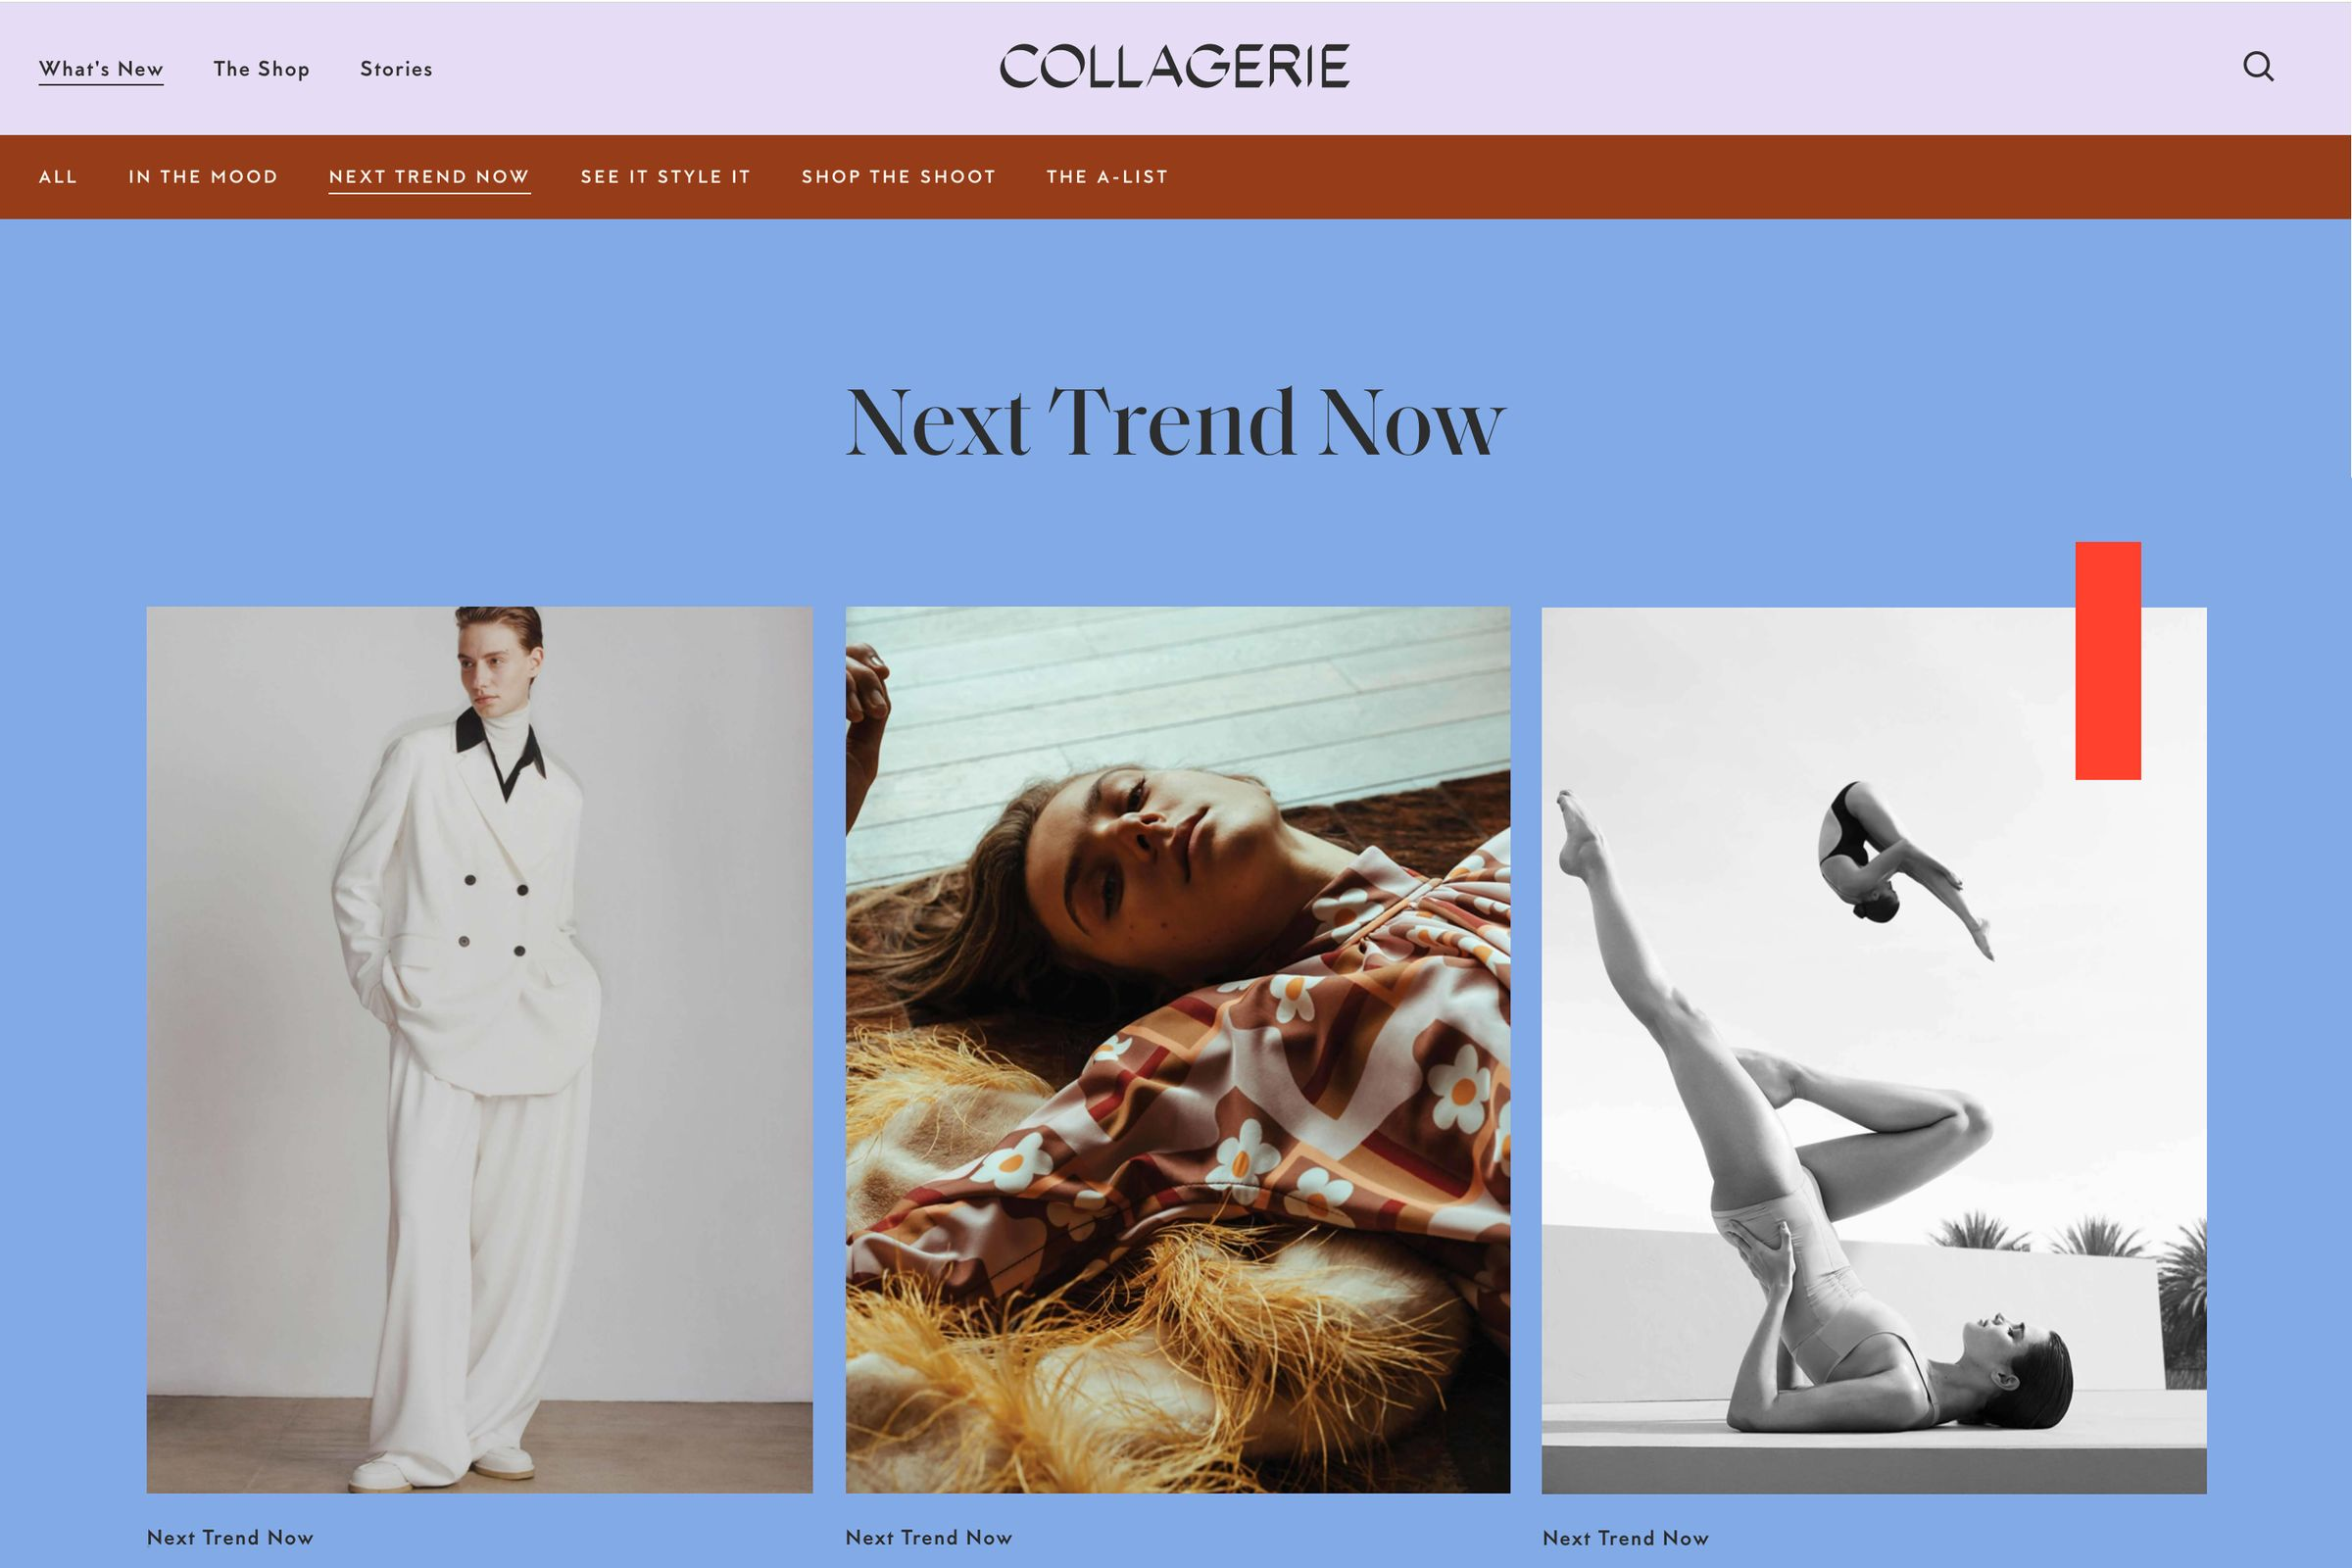 Collagerie website Next Trend Now